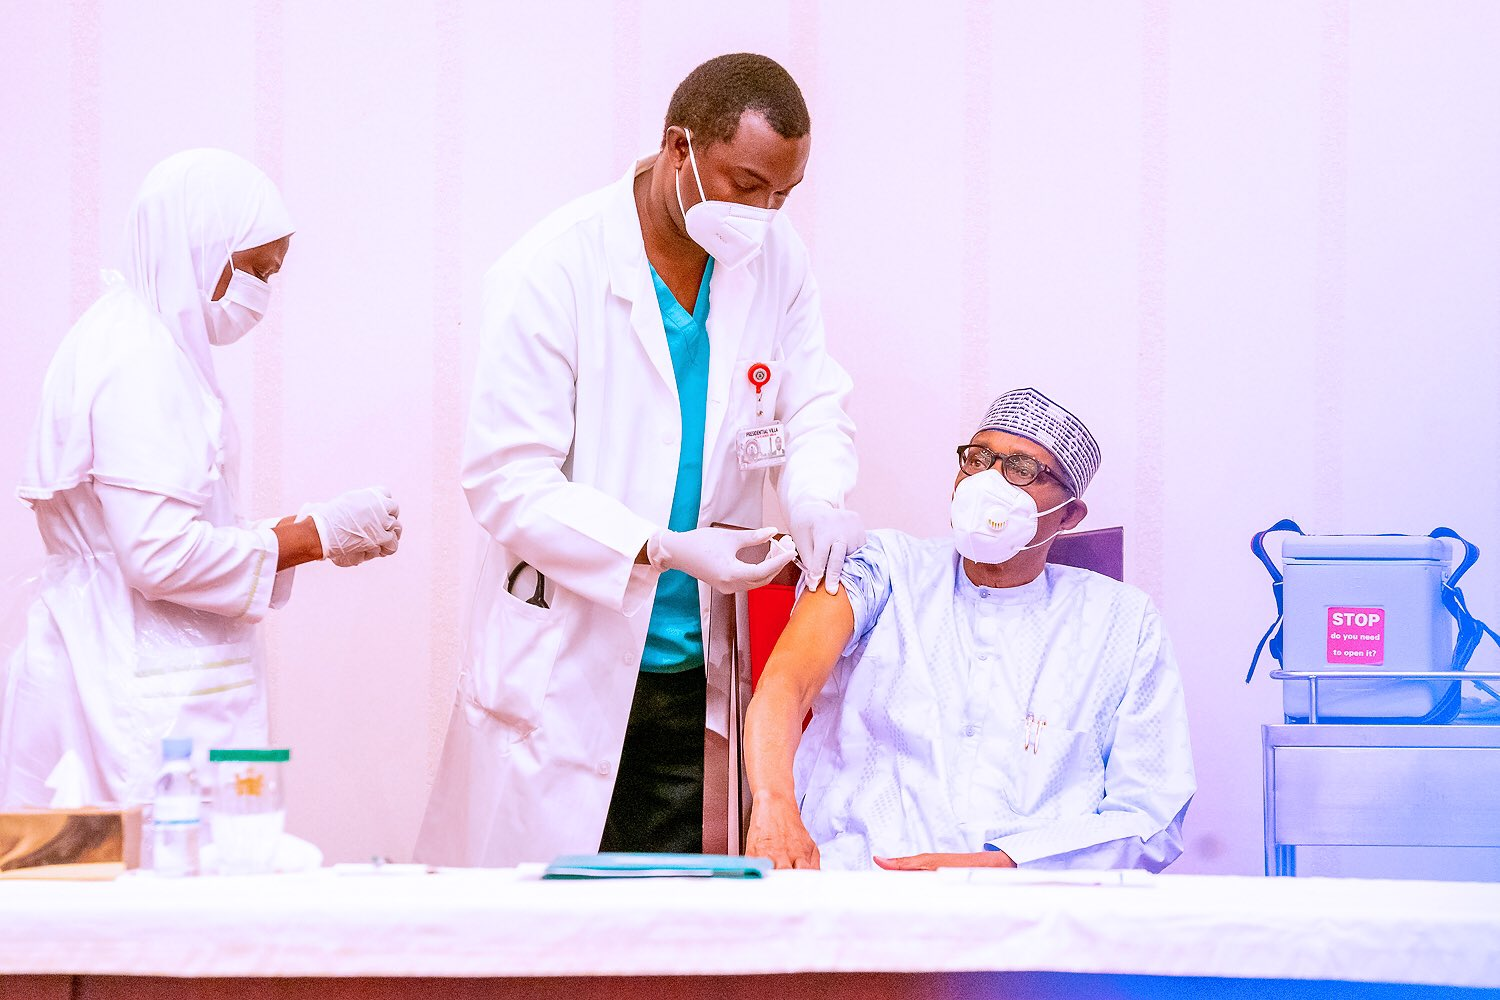 President Buhari, Osinbajo Receive Jabs Of COVID-19 Vaccine As National Vaccination Program Commence